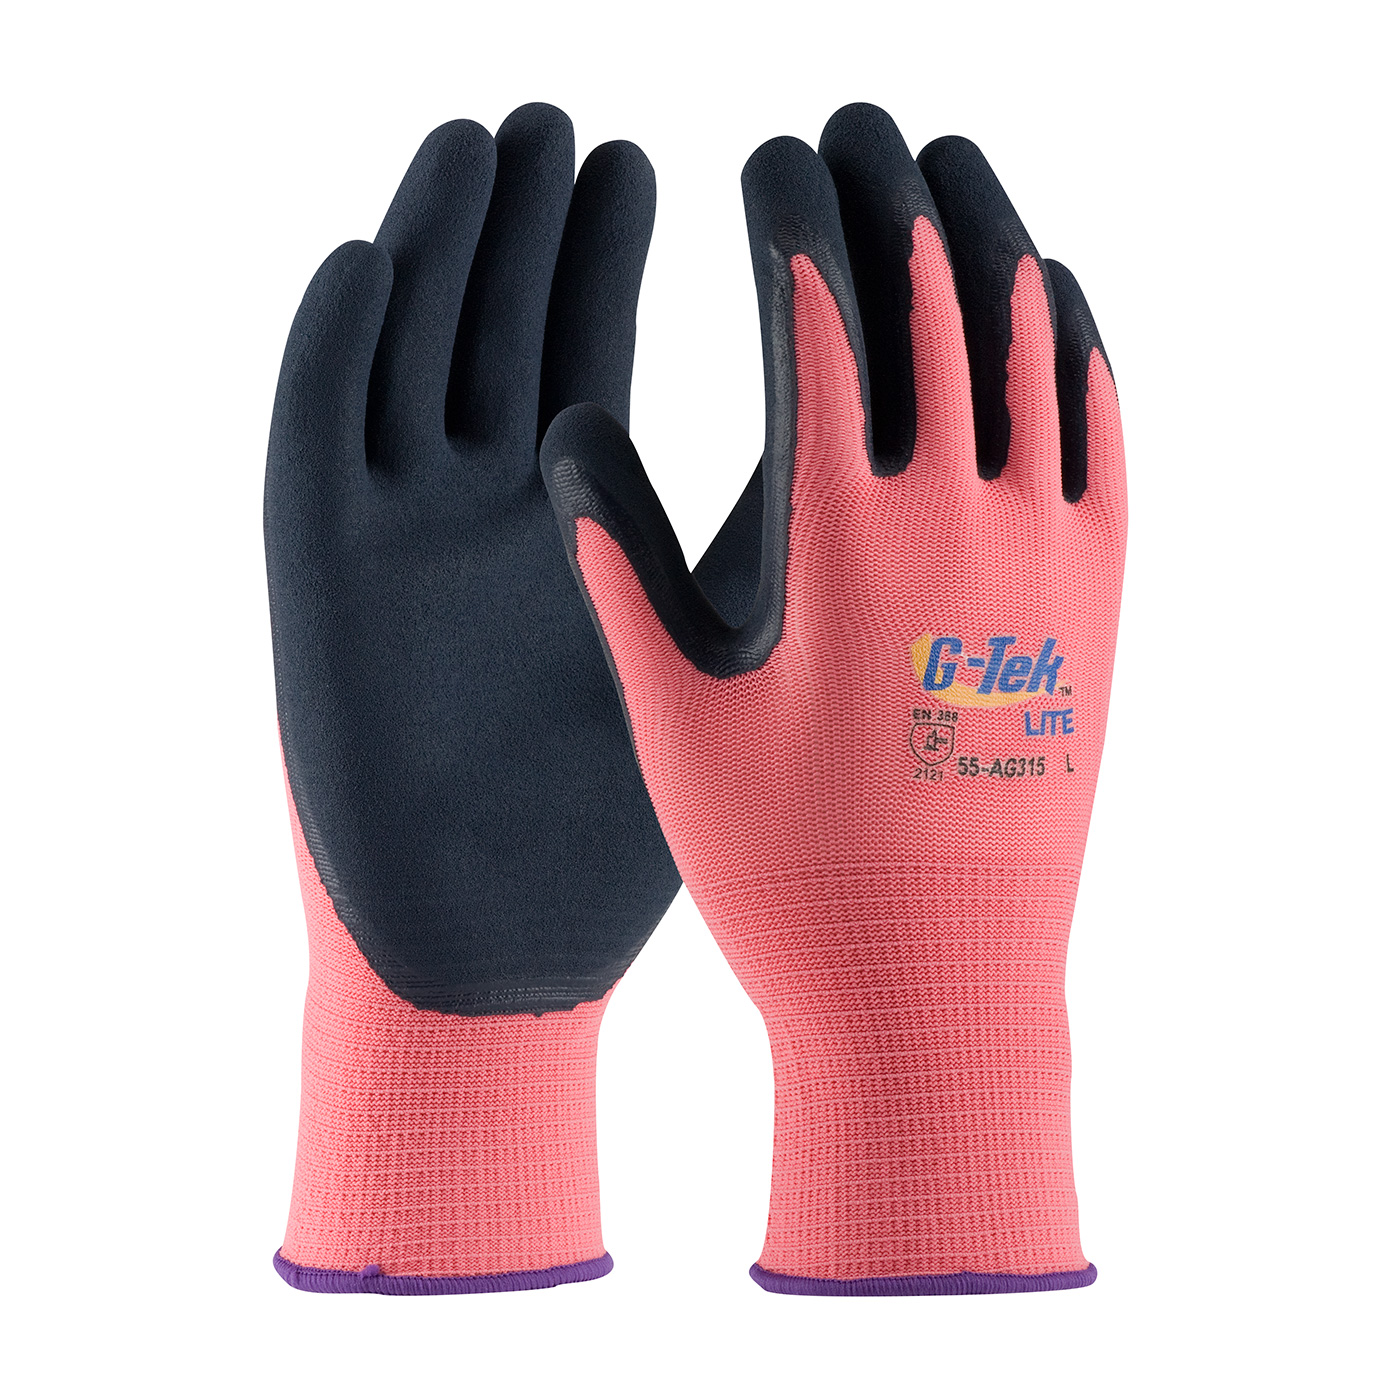 #55-AG315 PIP®  Hi-Vis Rose G-Tek® GP™ Polyester Shell with Latex Coated MicroSurface Grip